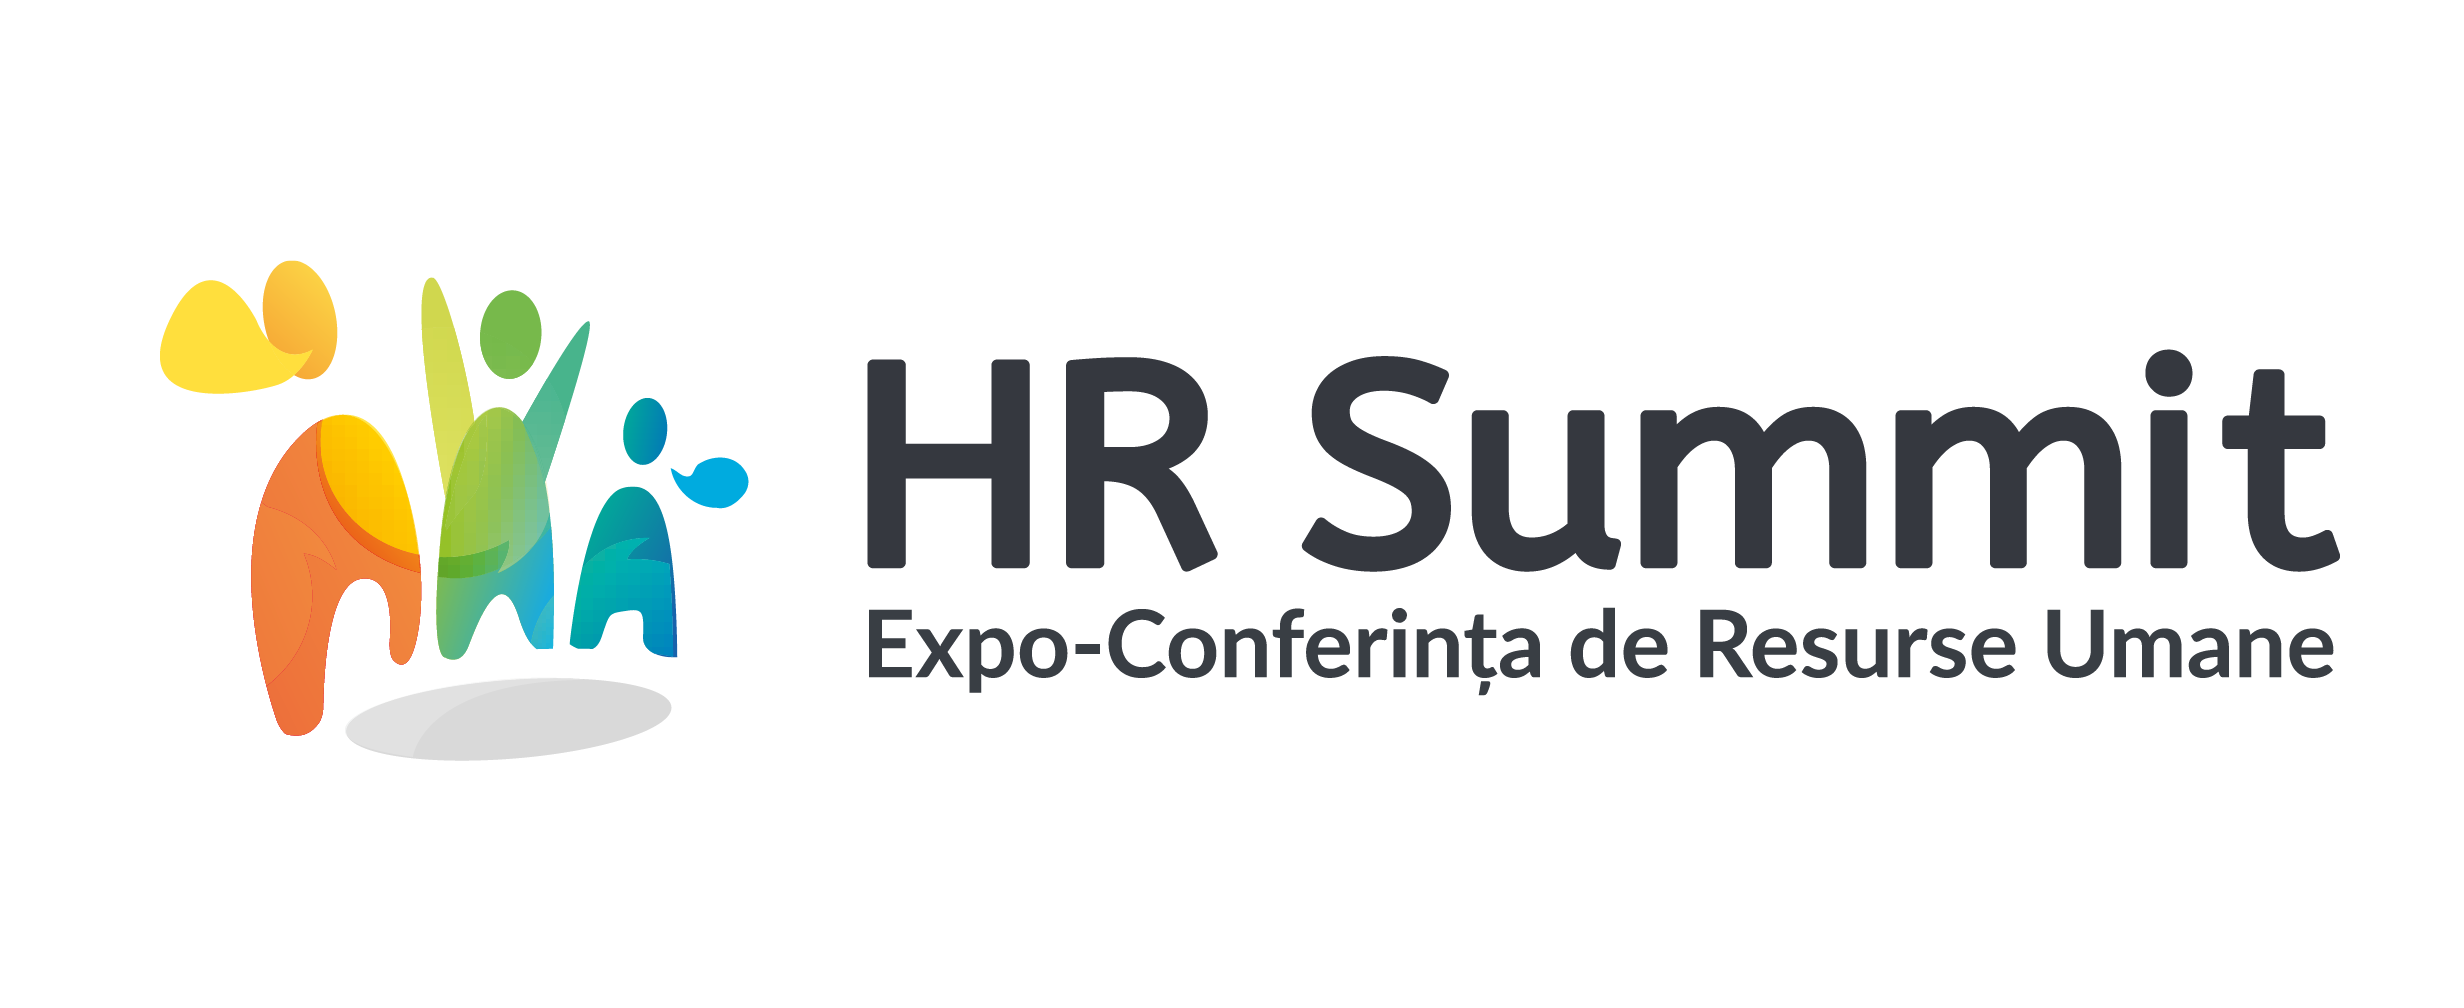 HR-SUMMIT-LOGO-NG-01